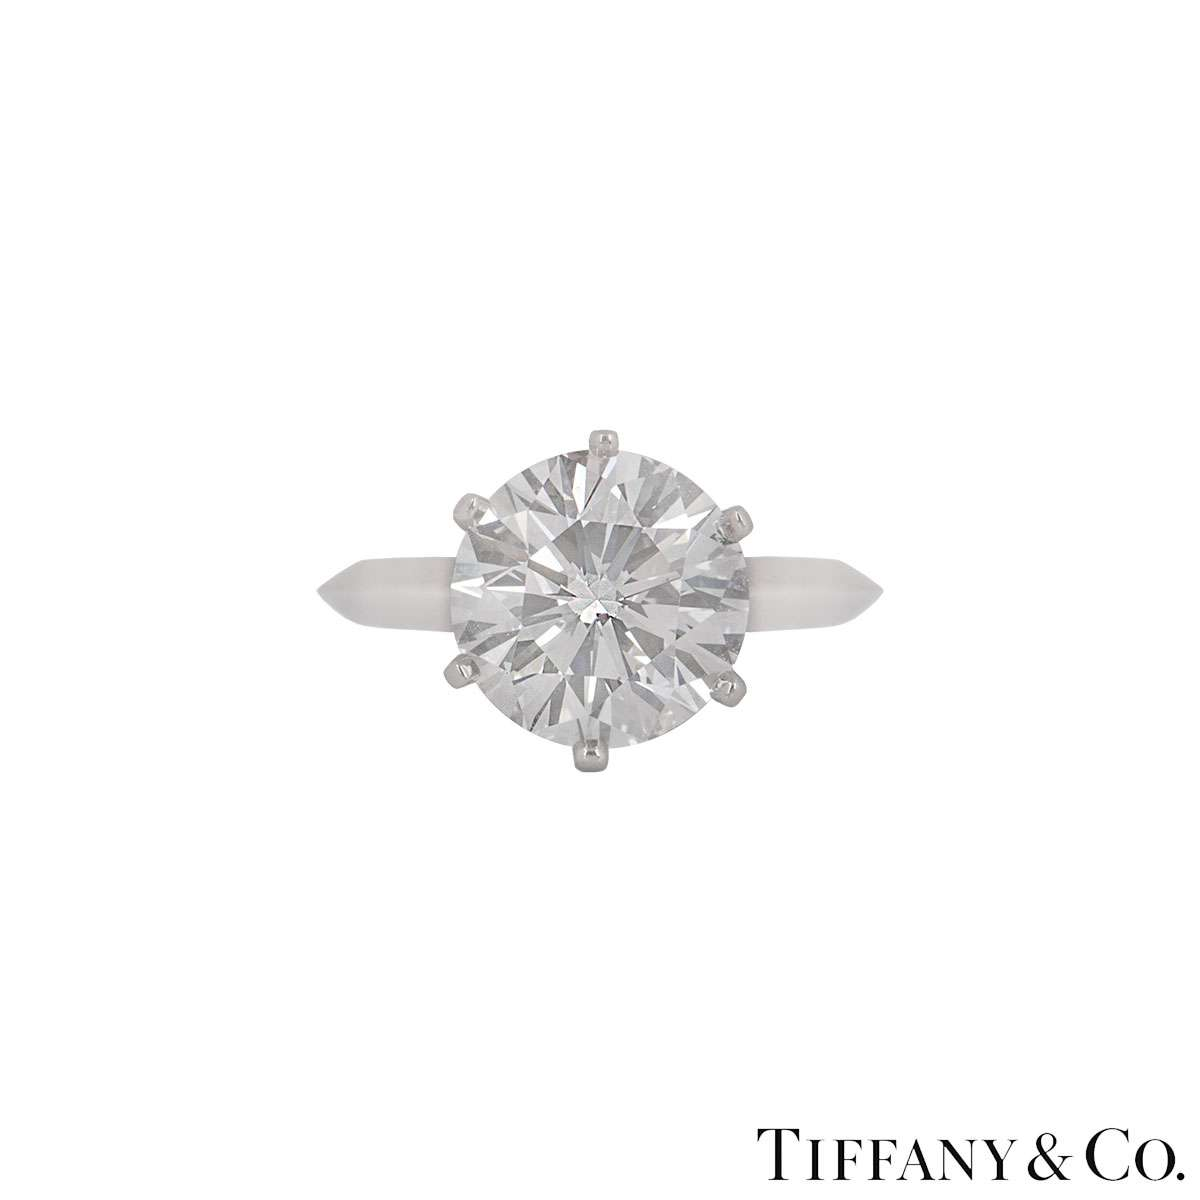 Tiffany & Co. Platinum Diamond Setting Ring 3.04ct E/VVS2